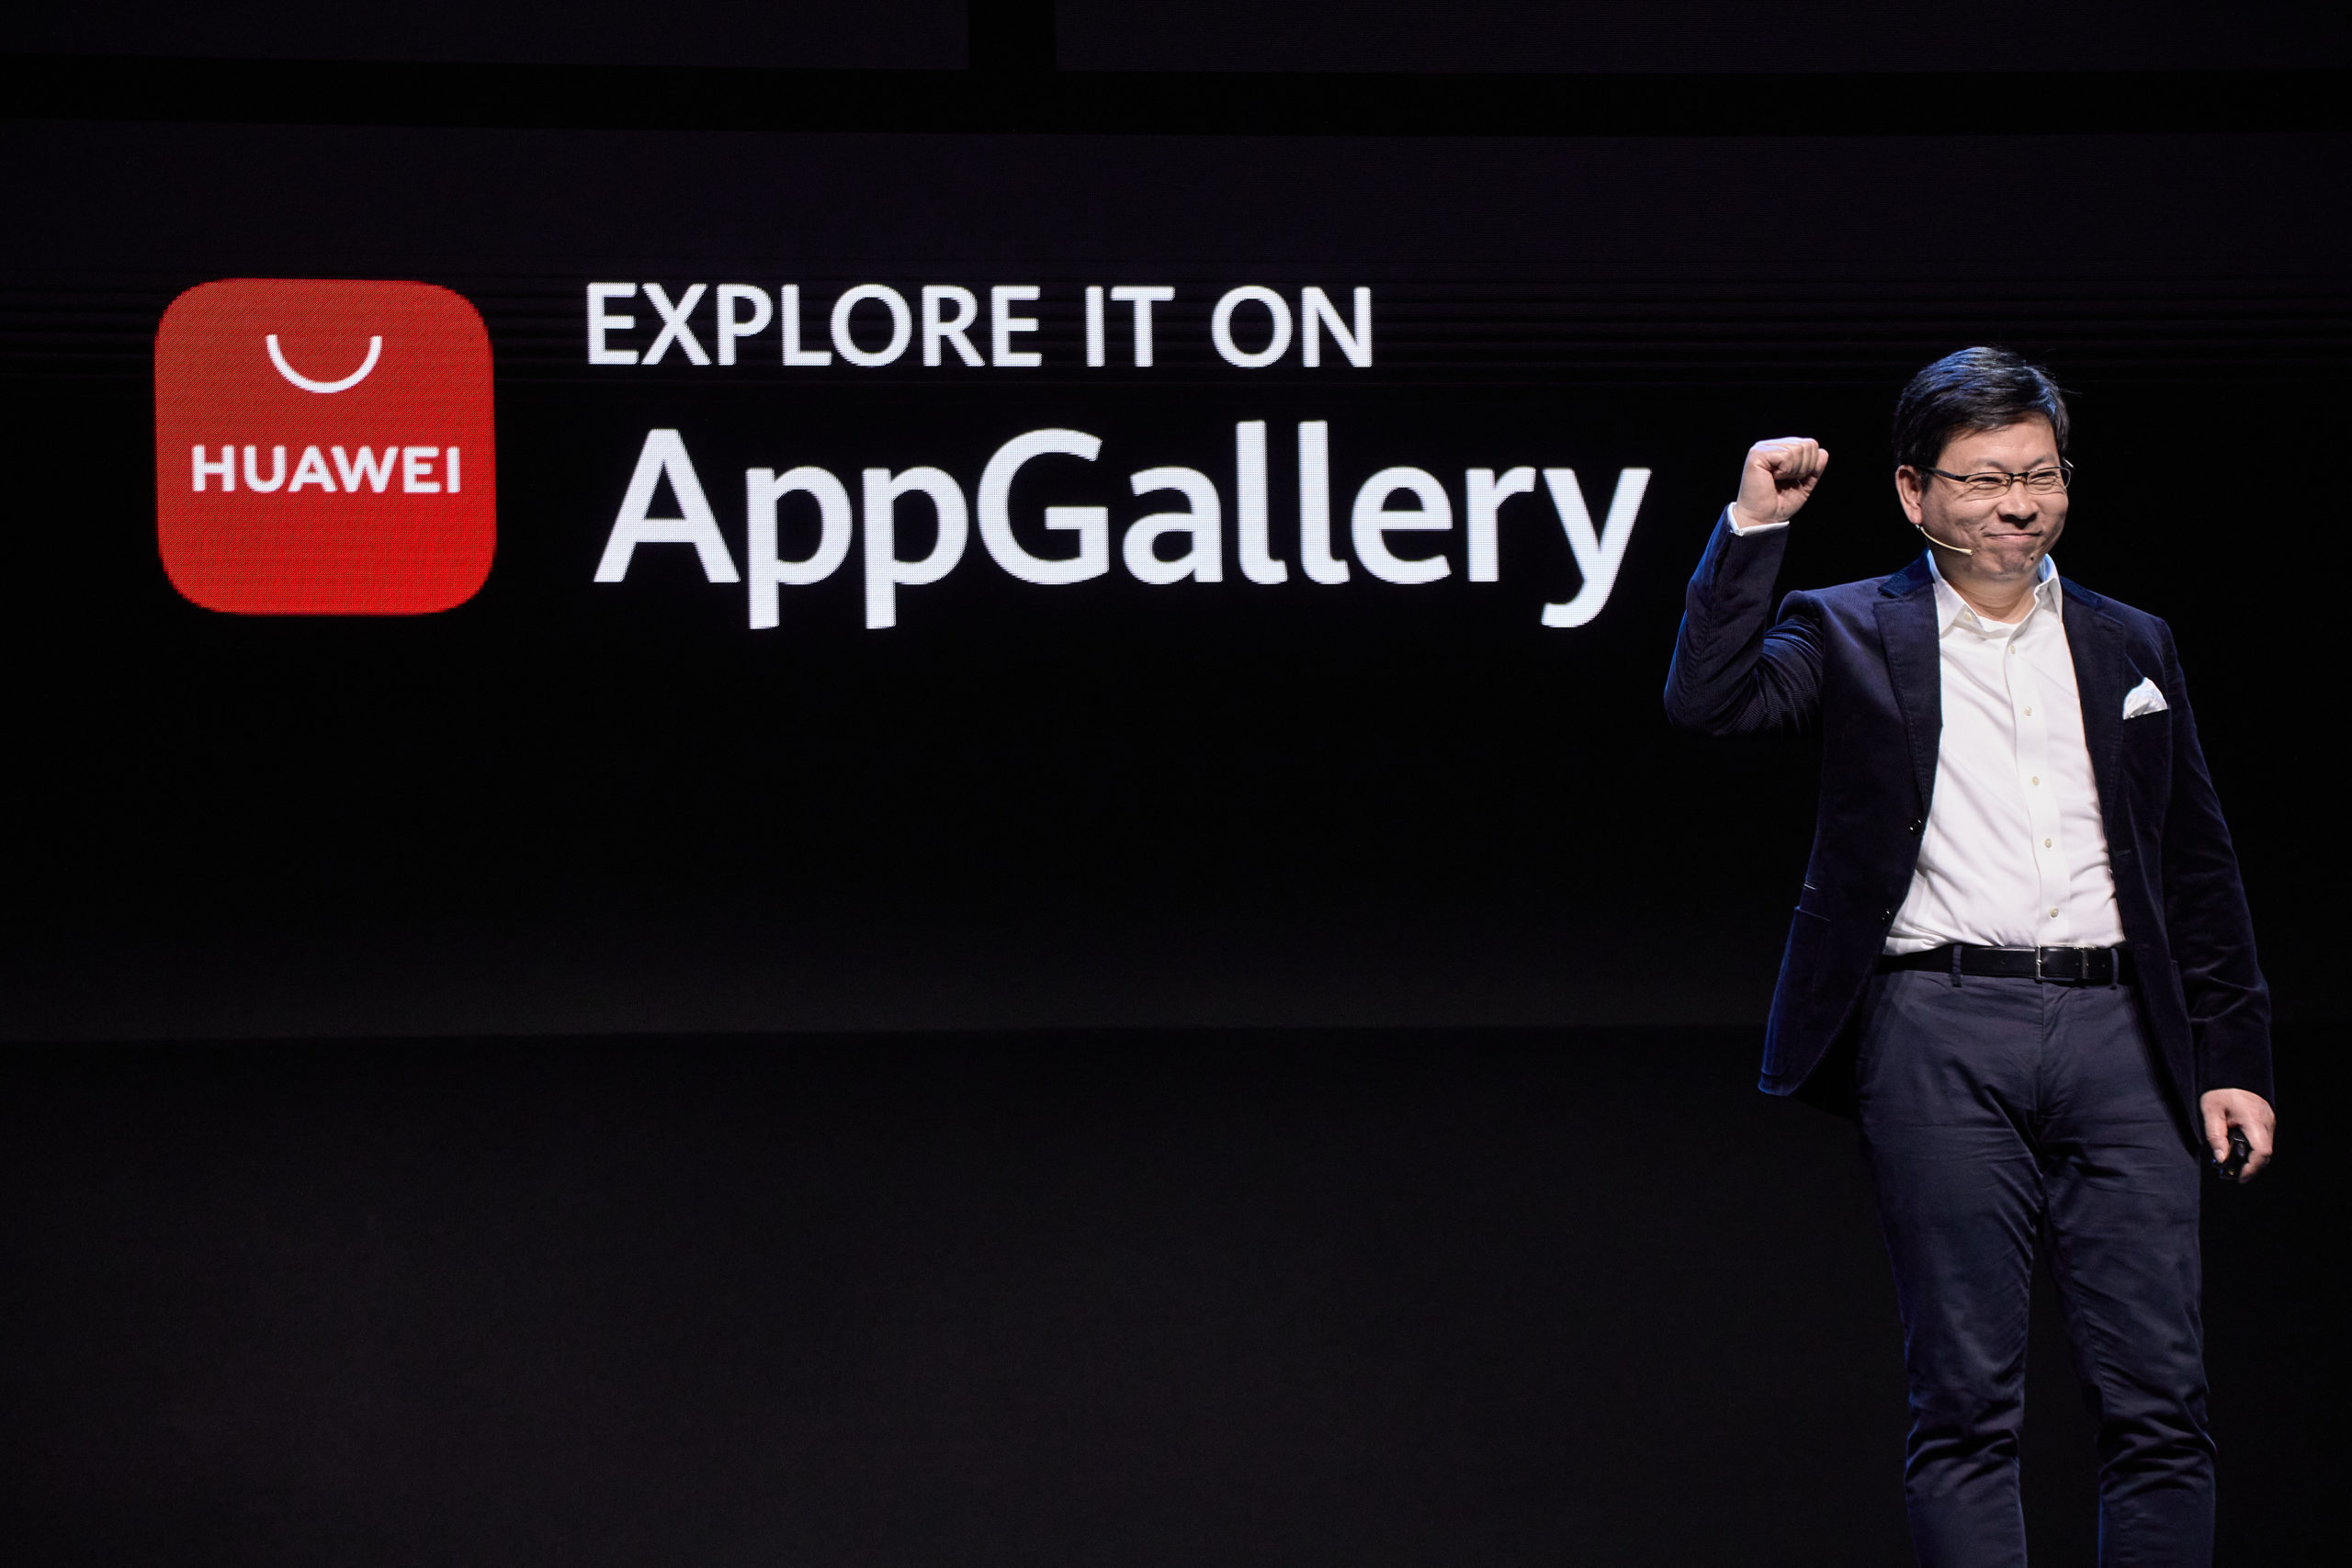 Huawei Reveals HUAWEI AppGallery's Vision to Build A Secure And Reliable Mobile Apps Ecosystem 1